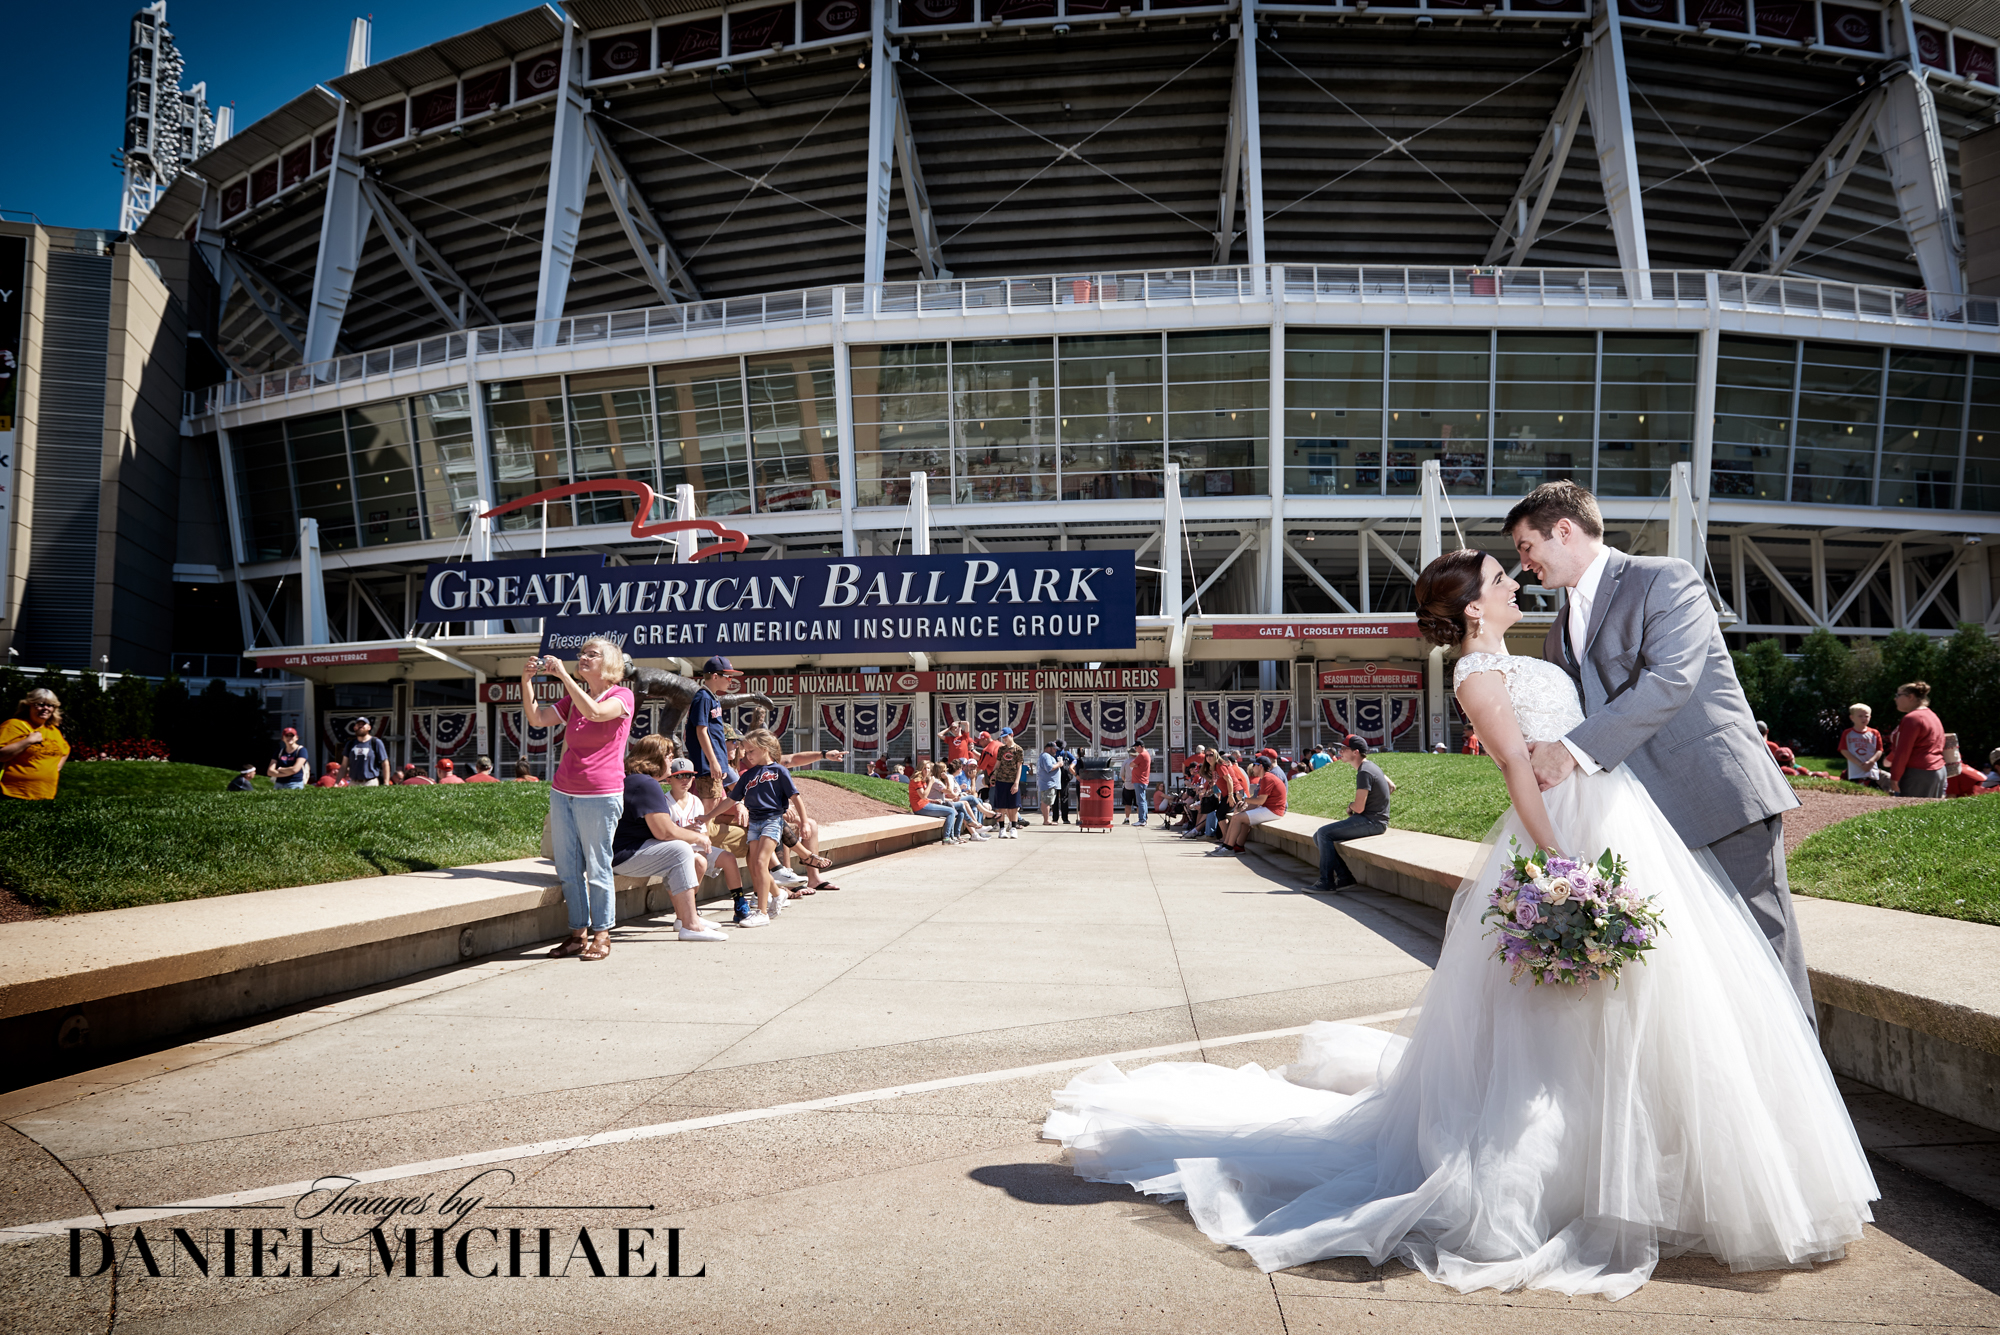 Wedding Photography Great American Ballpark